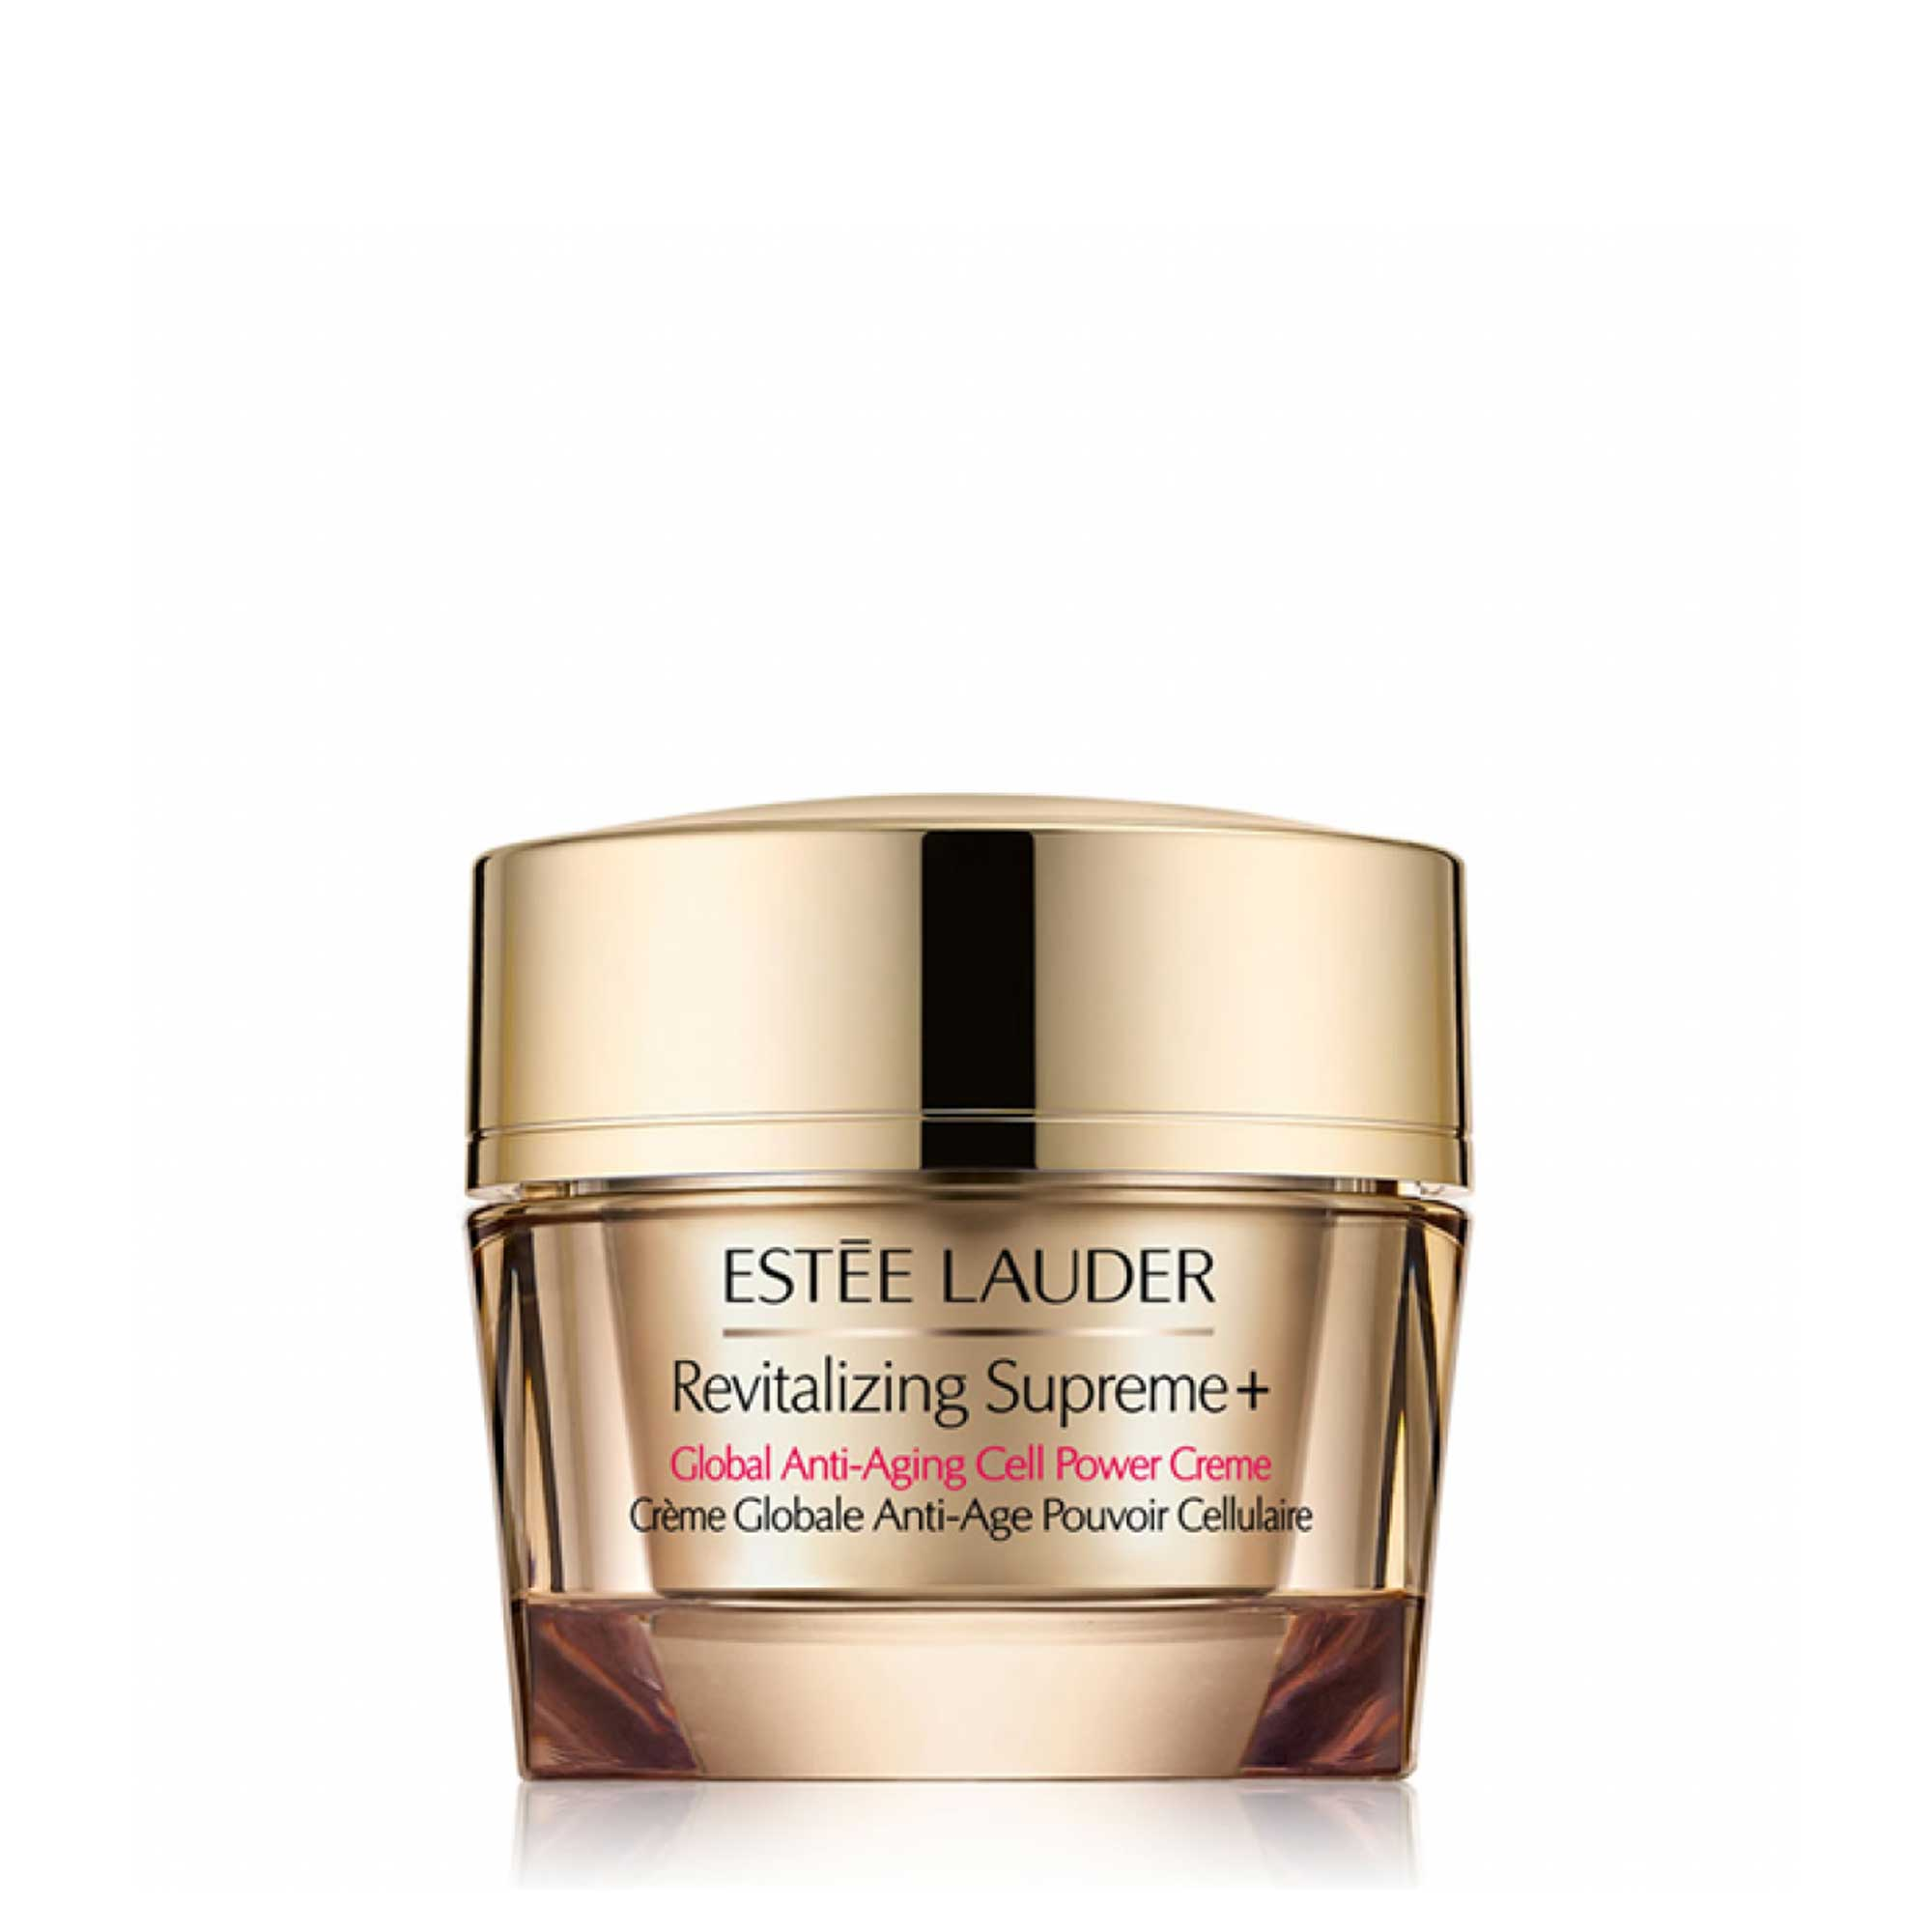 Revitalizing Supreme Plus Creme - Estee Lauder